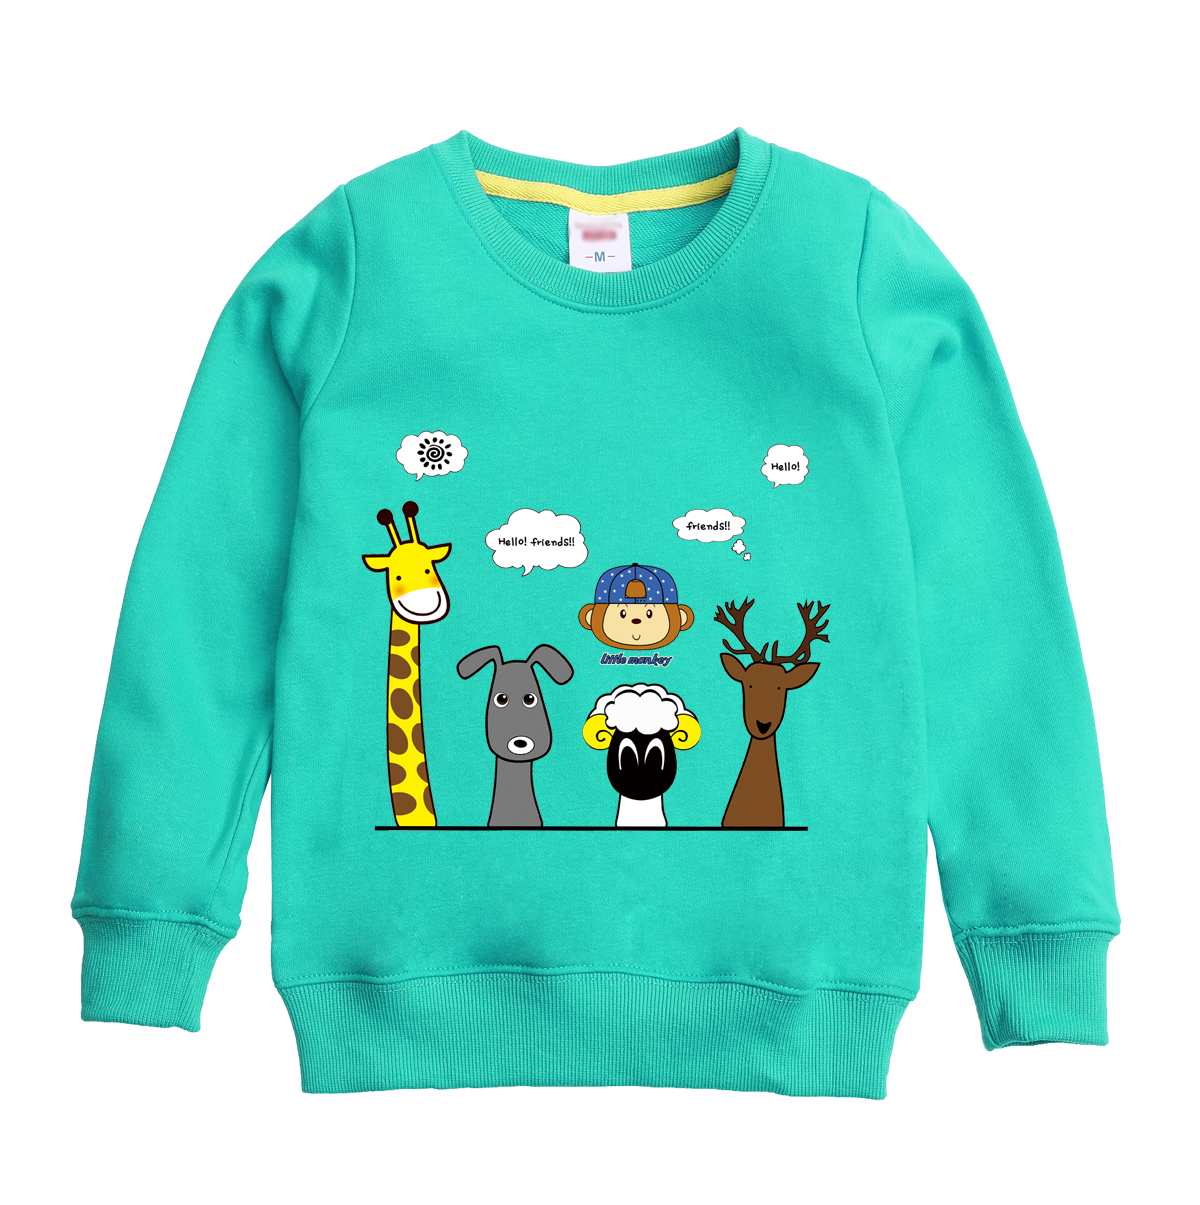 Winter autumn full sleeve sweatshirt cute animal printed design for child with eight colors for child select winter sweater ...